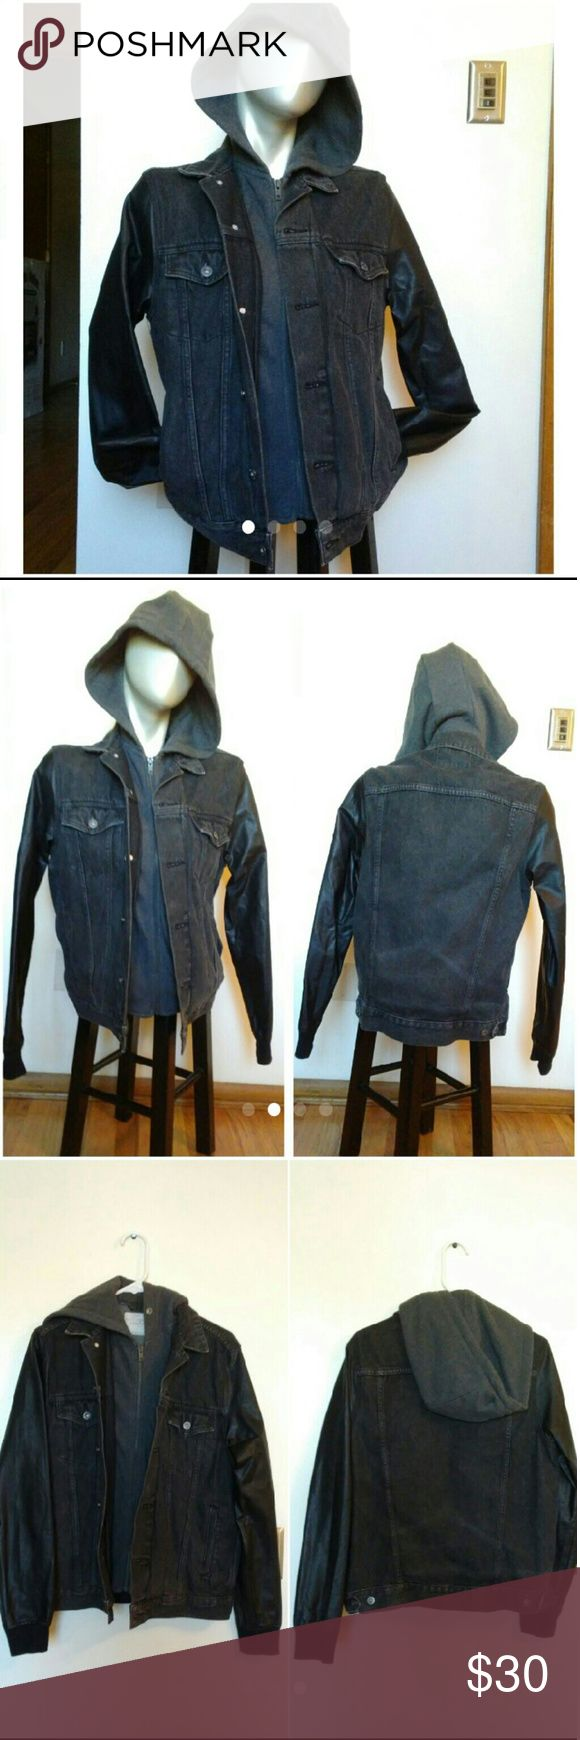 New Jacket with Built in Hoodie NWOT. Layerd black denim jacket with faux leather sleeves and gray hoodie underlay. This jacket is so cool, just a bit snug. Men's size small. No signs of wear, perfect condition! Zip up hoodie with black denim button up jacket.   ?All proceeds from my listings go toward my medical expenses! Jackets & Coats